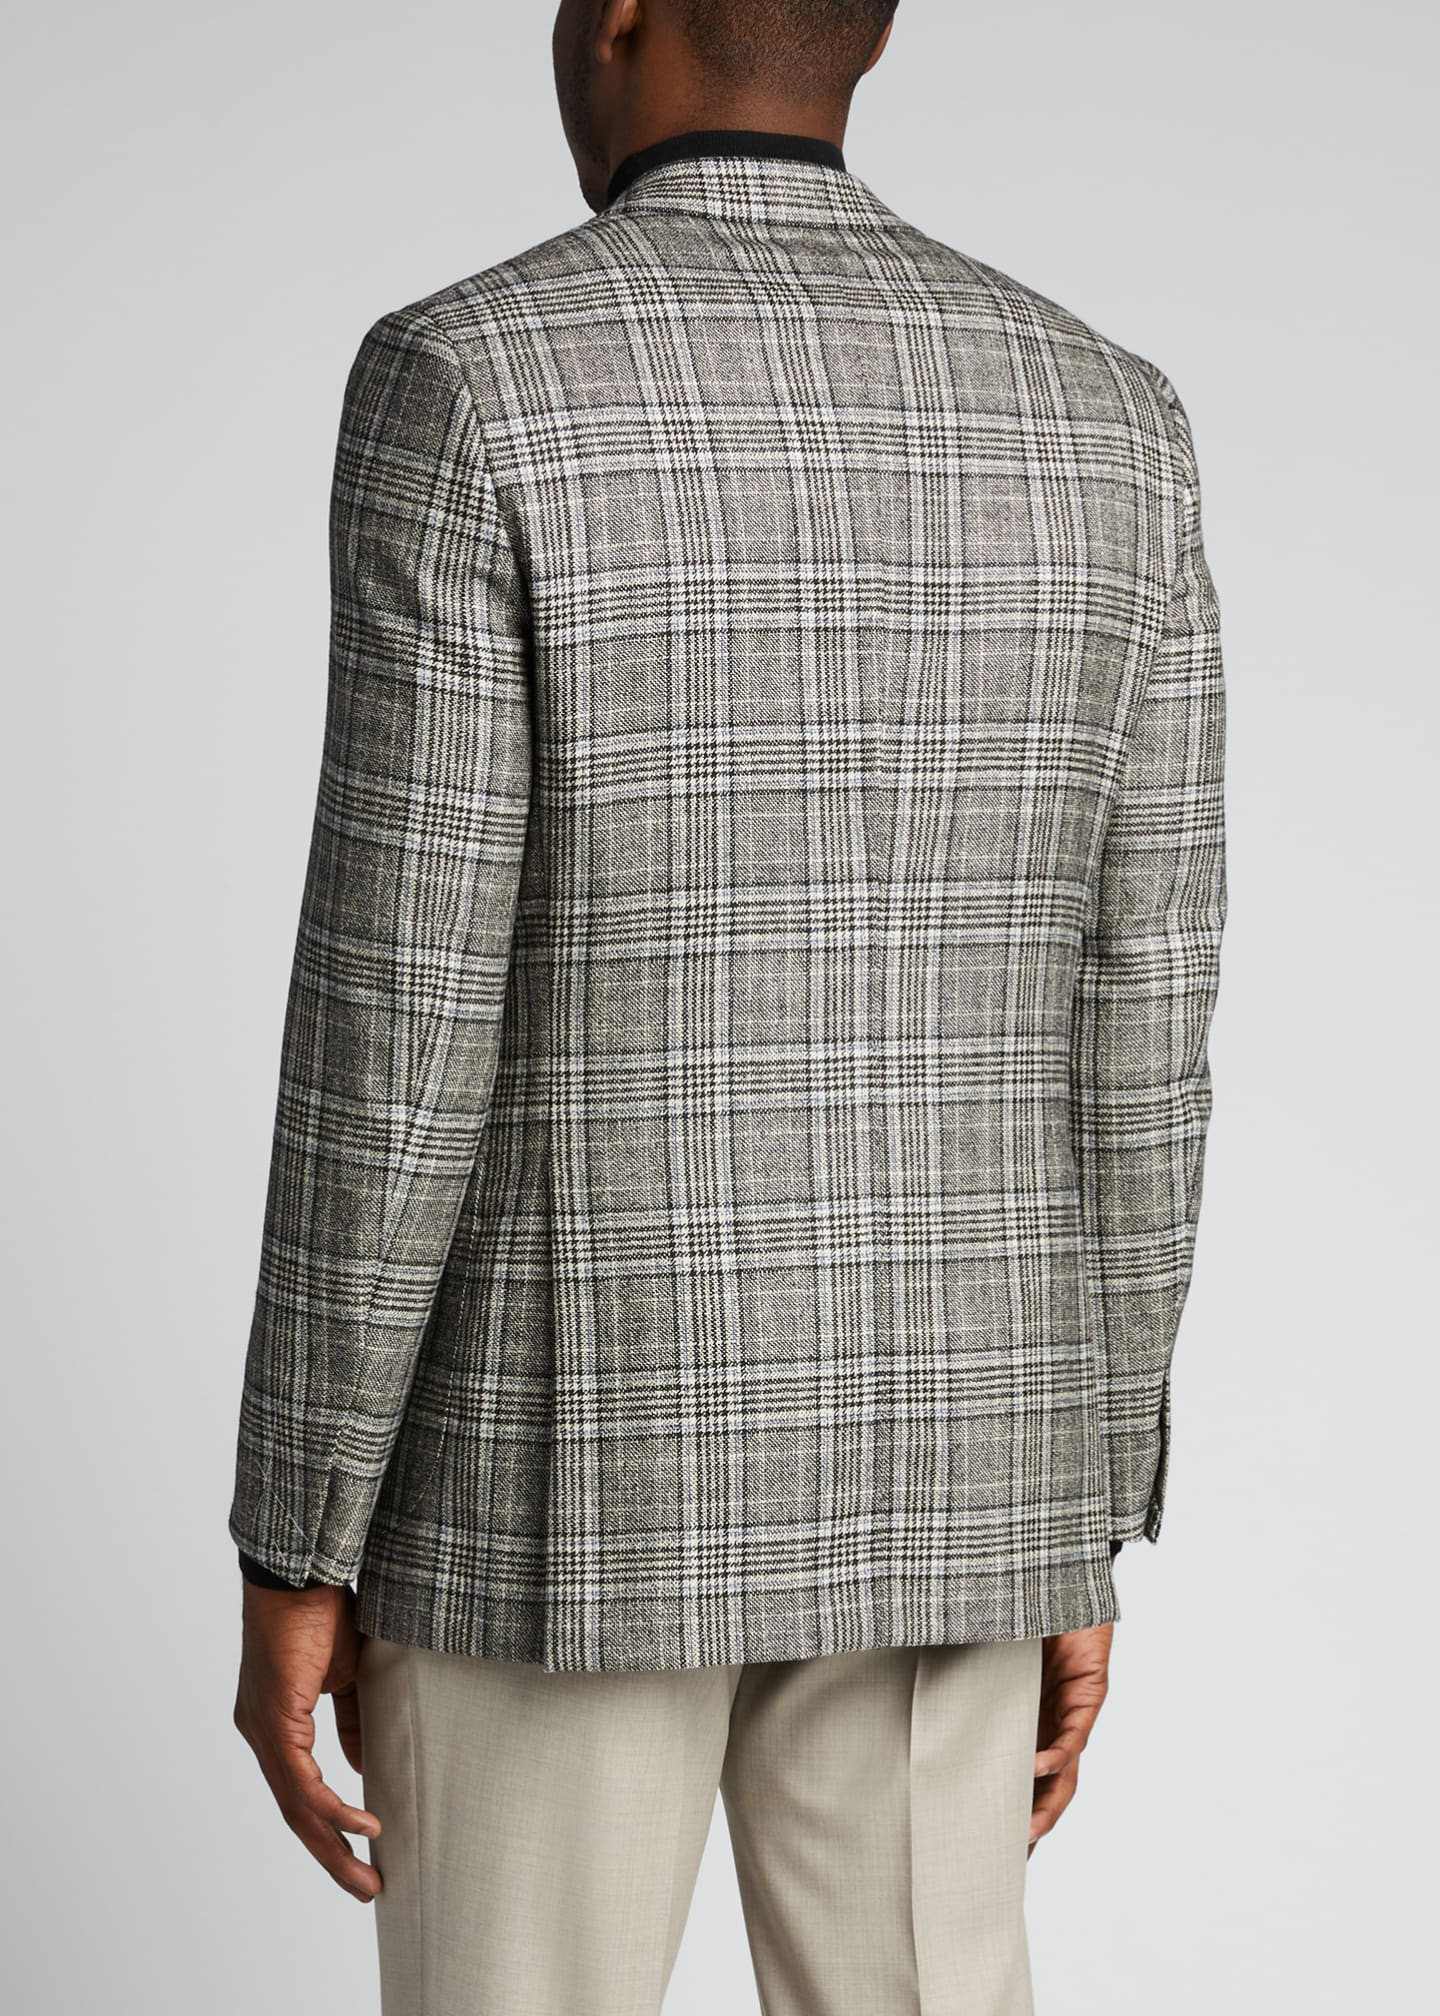 Image 2 of 5: Men's Plaid Sport Jacket